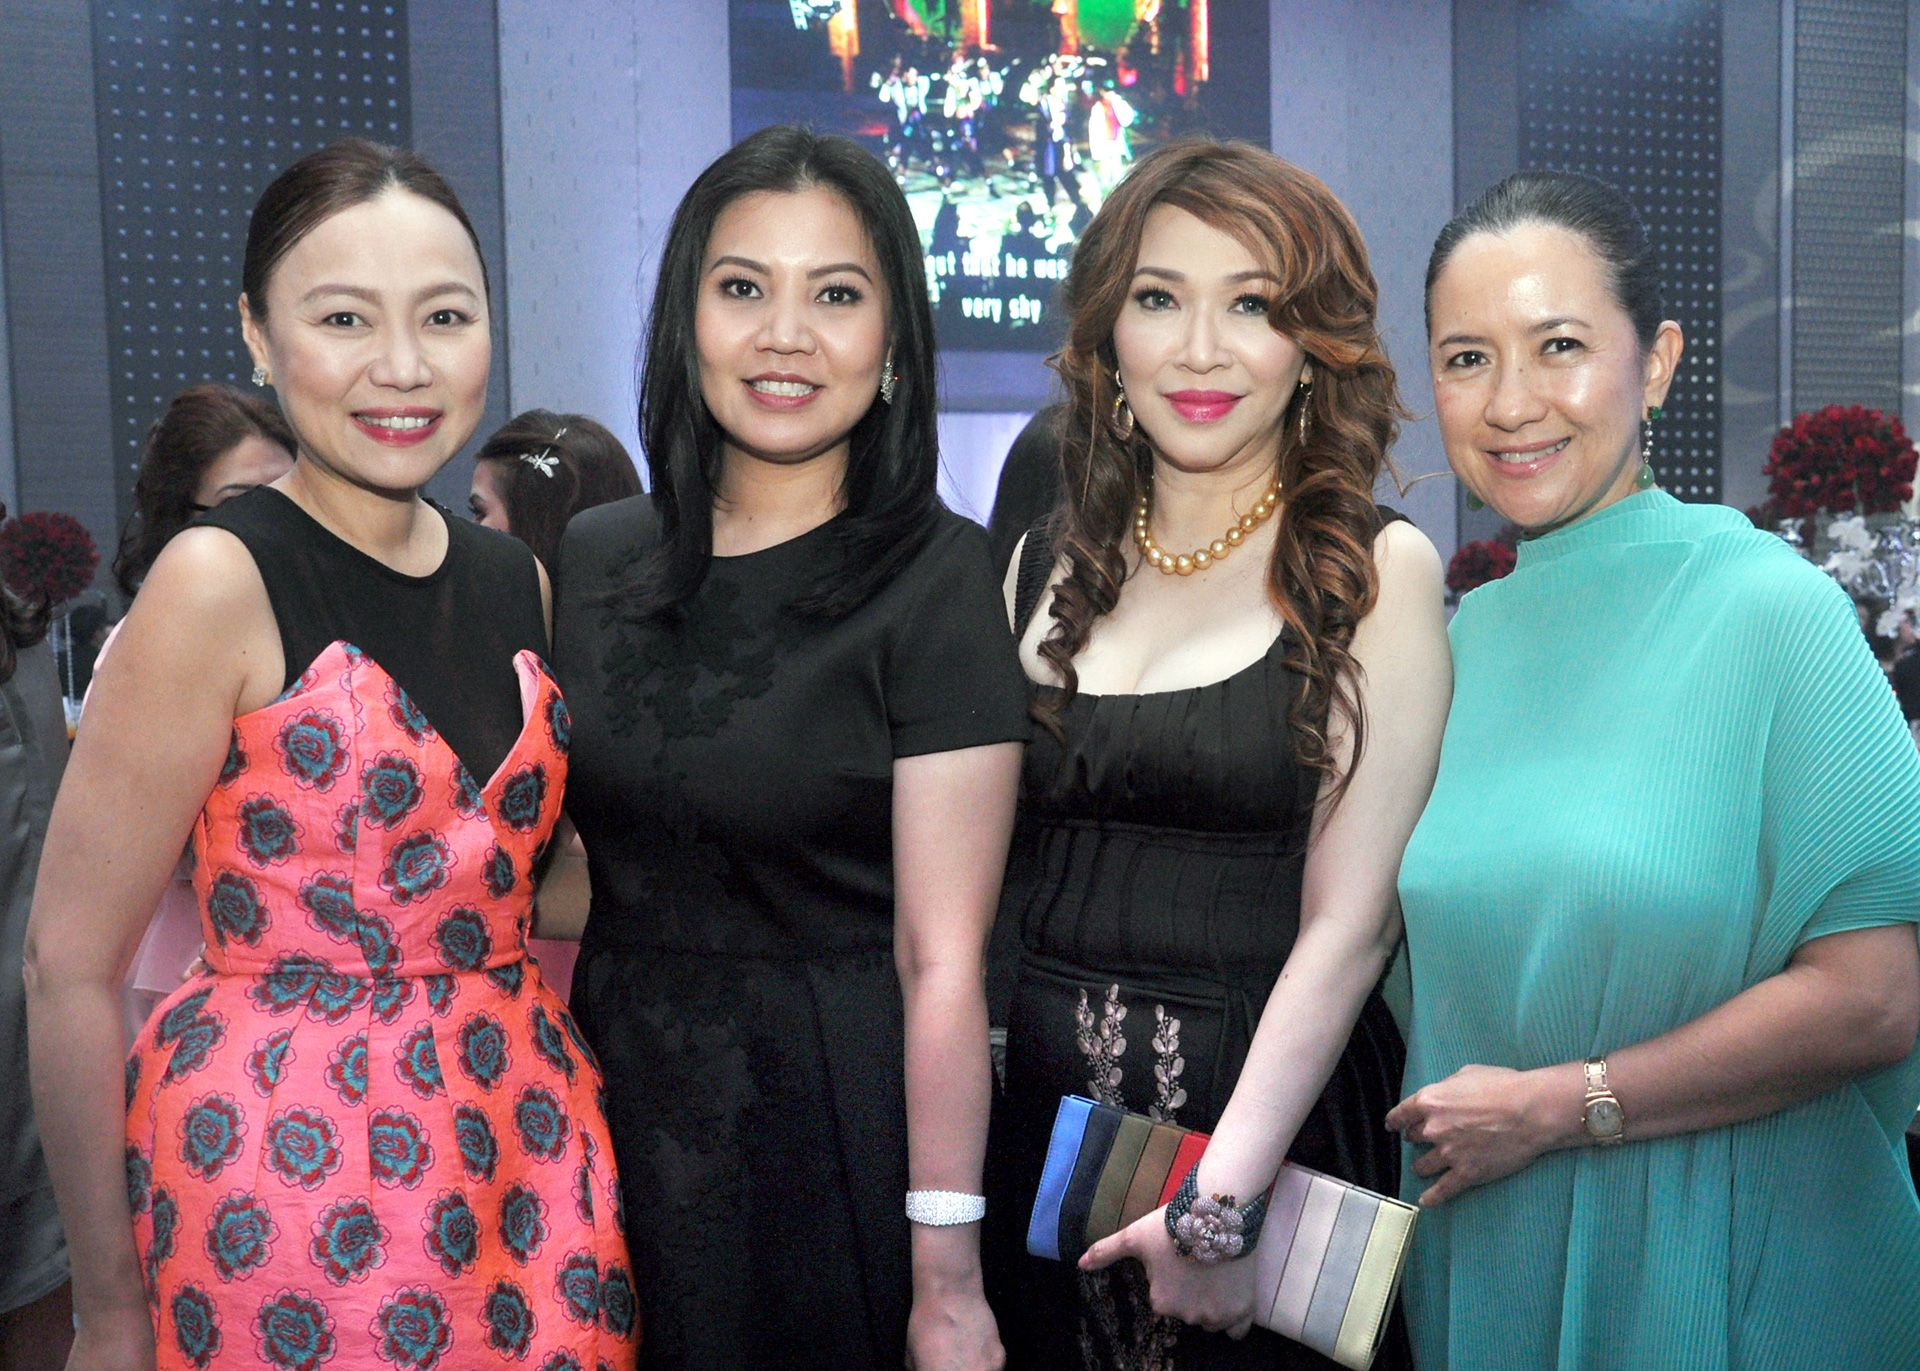 Beng Dee, Willin Chan, Ruby Chua, and Mia Borromeo